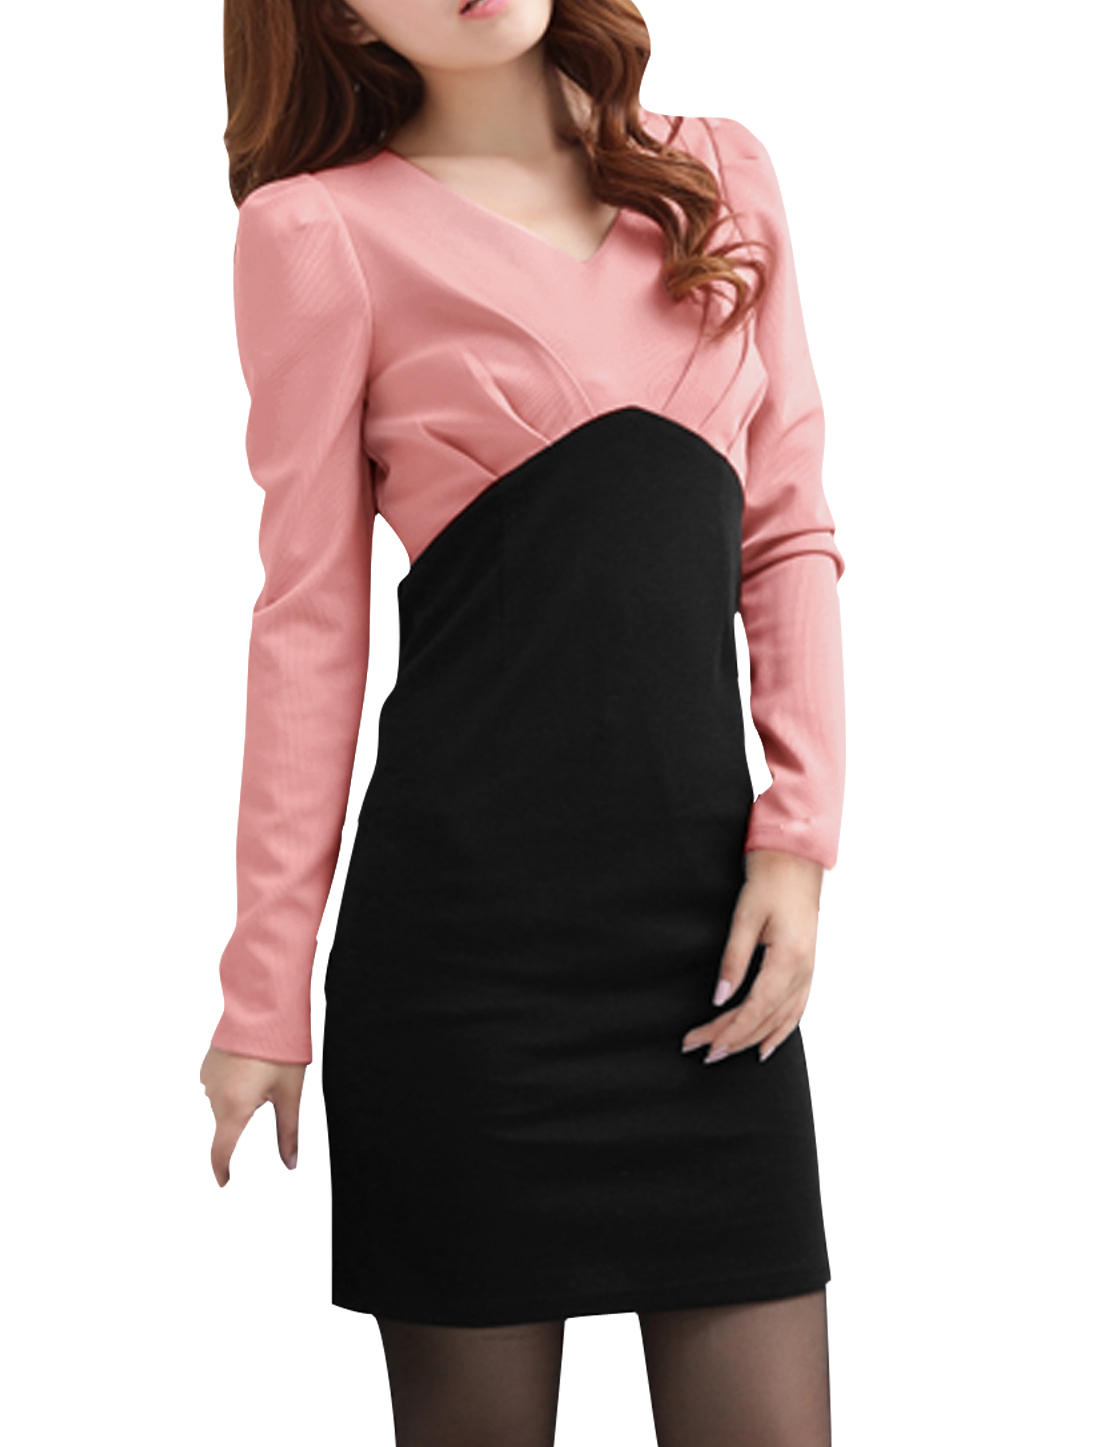 Pullover Contrast Color Design Pink Black Spring Mini Dress for Lady XL